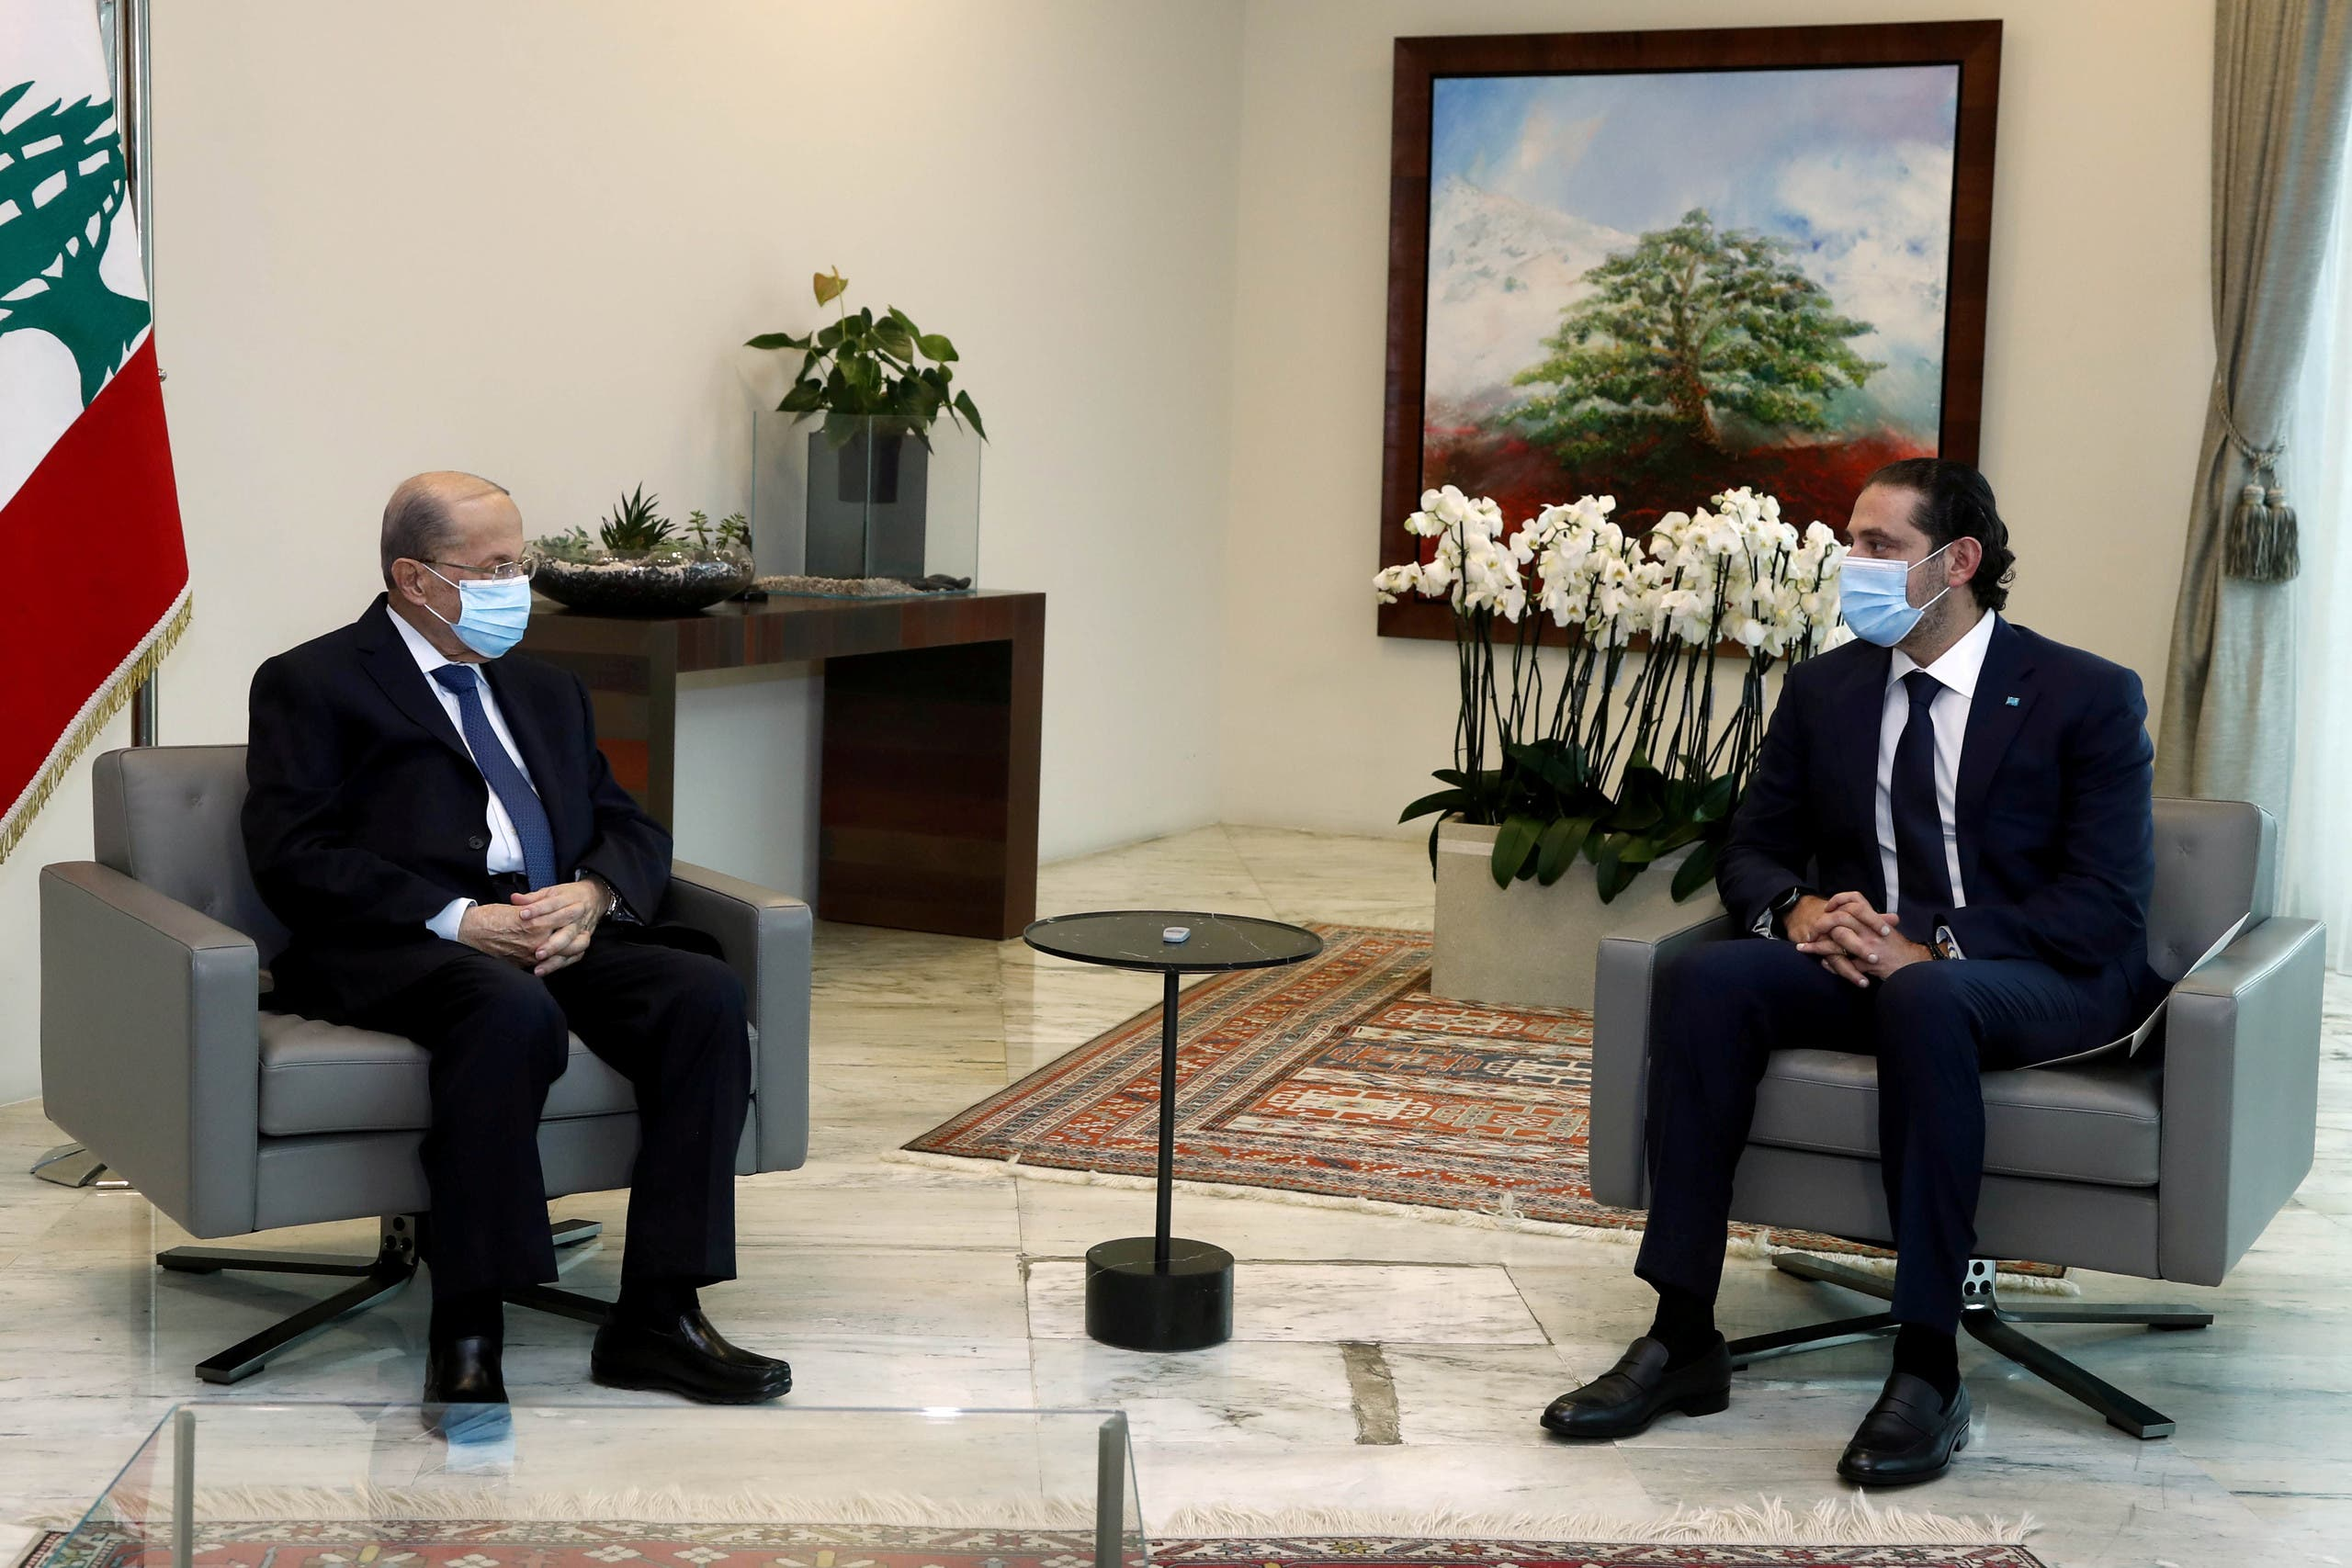 Lebanon's President Michel Aoun meets with Prime Minister-designate Saad al-Hariri at the presidential palace in Lebanon March 18, 2021. (Reuters)